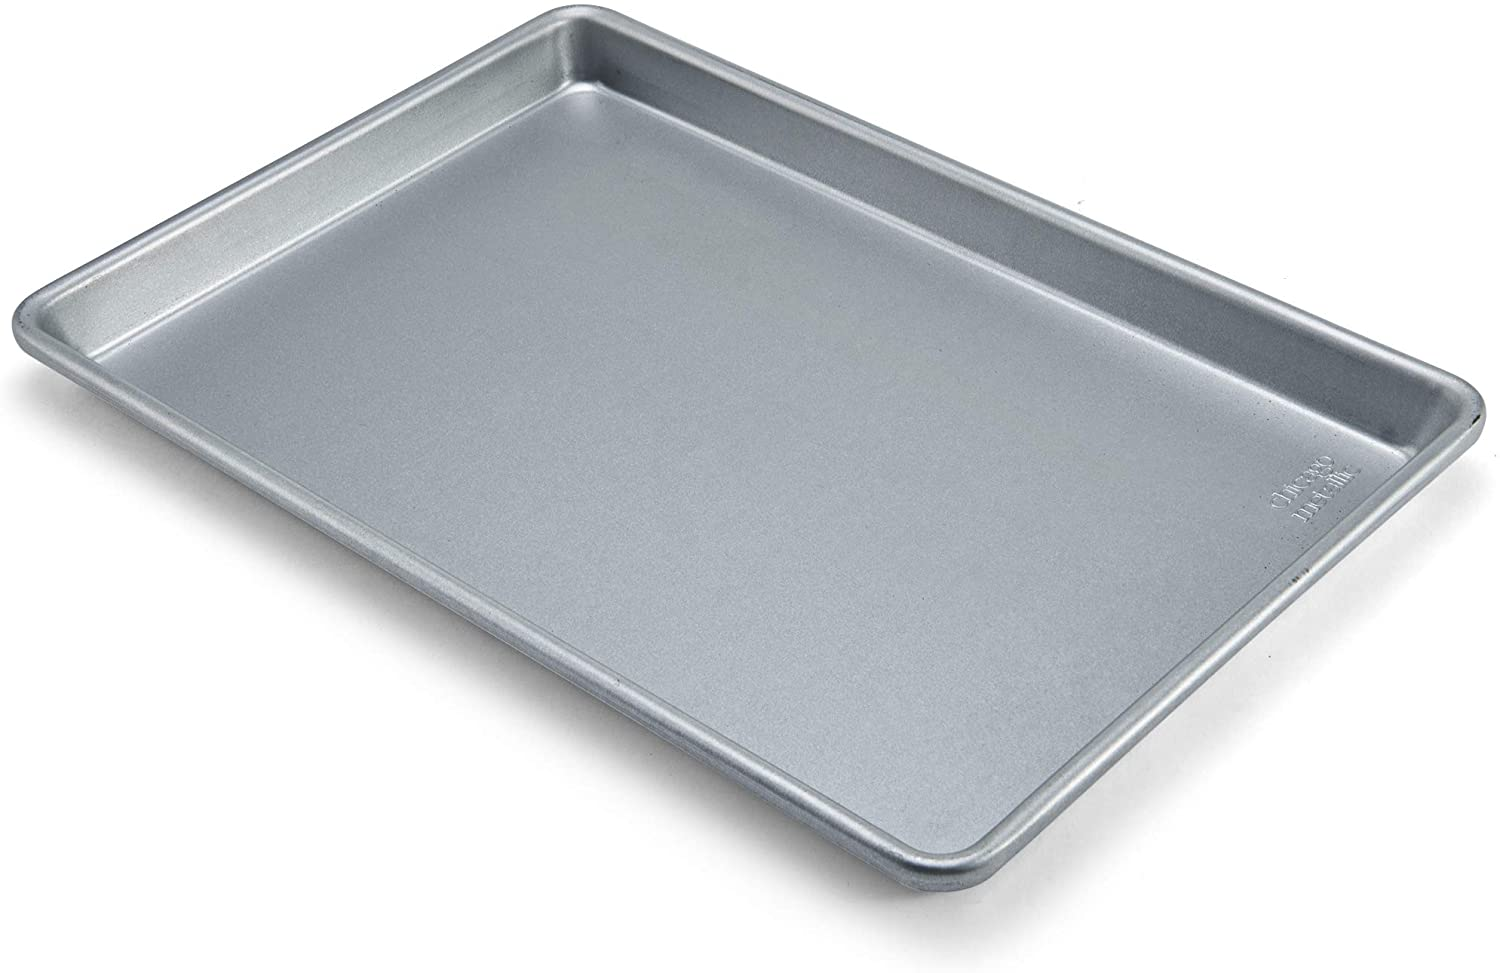 Image of Jelly Roll Pan